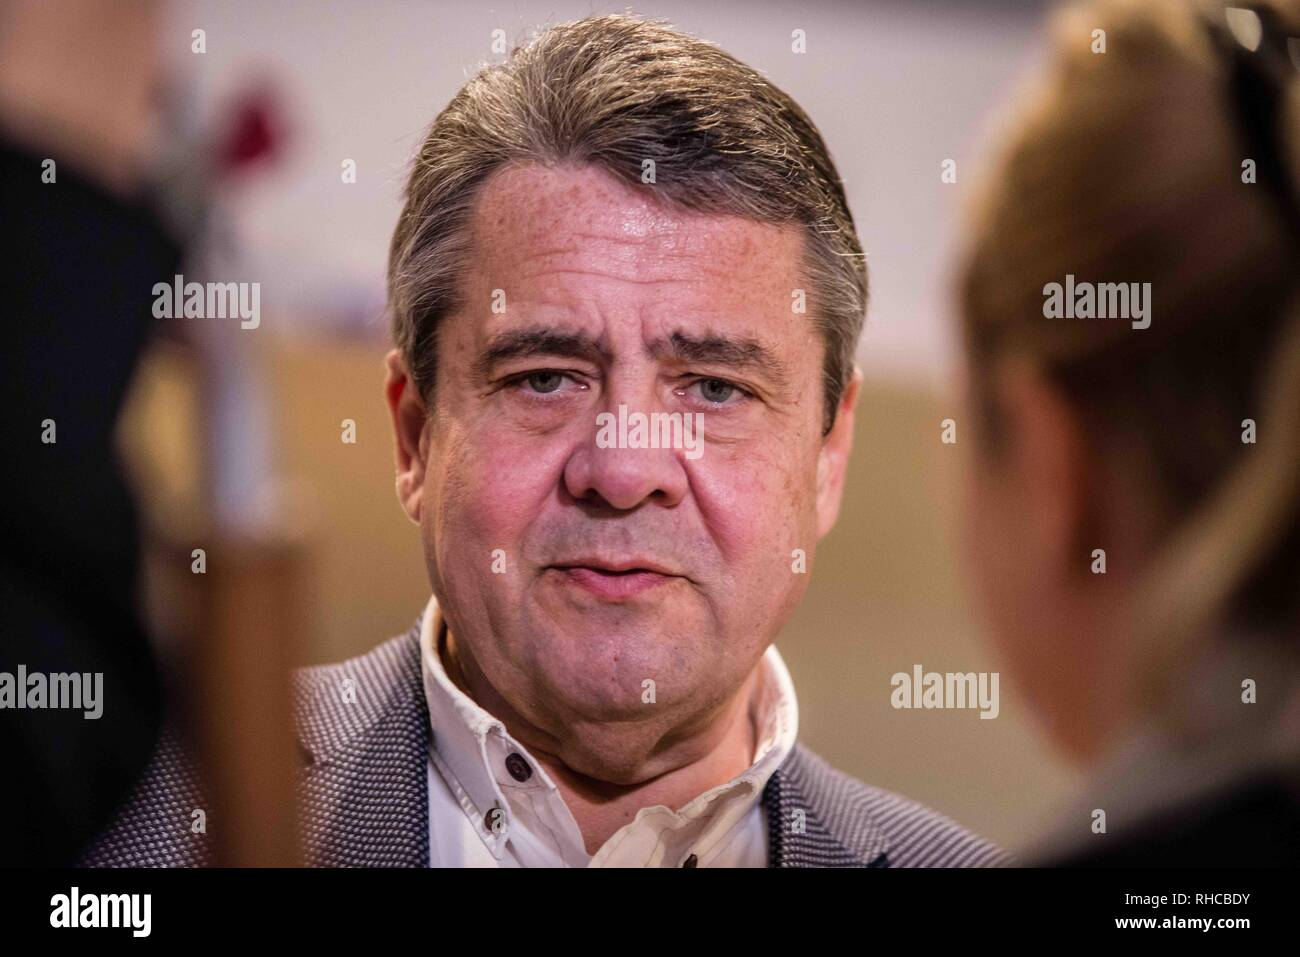 Munich, Bavaria, Germany. 2nd Feb, 2019. Former German Foreign Minister and Vice-Chancellor SIGMAR GABRIEL during an appearance with Bundestag member Florian Post at Munich's Literaturhaus. In support of his new book Zeitenwende in der Politik, the former German Foreign Minister and Vice Chancellor SIGMAR GABRIEL appeared in Munich with fellow SPD Bundestag member Florian Post. Gabriel and Post discussed topics including the questions around the US partnership with Europe where the former no longer feels responsible for the security of the latter. Further topics included a lack of cohe - Stock Image